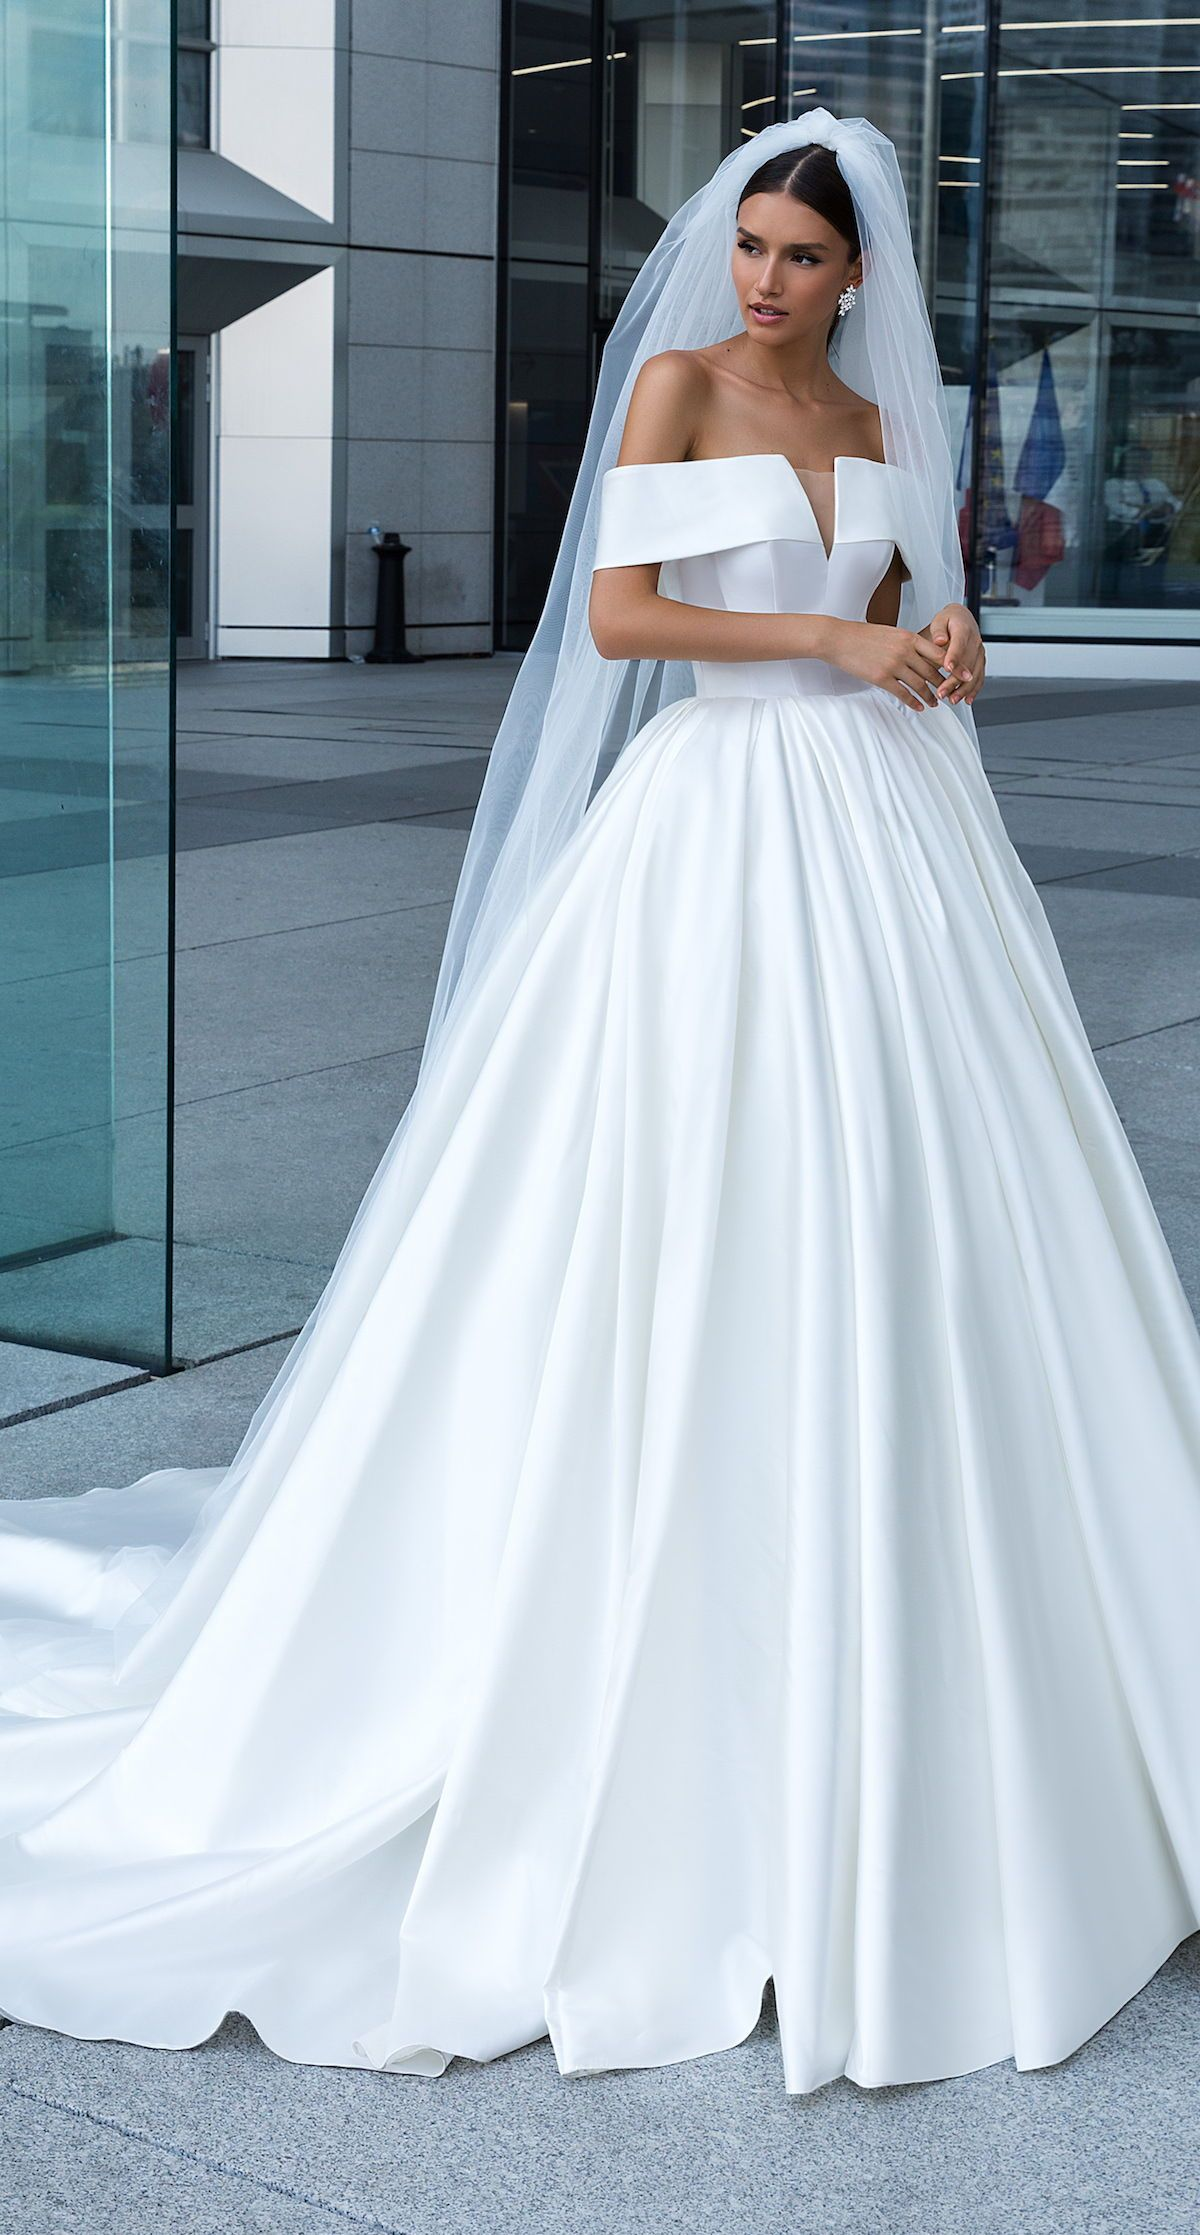 Crystal Design Ball Gown Wedding Dress Claide Simple Princess